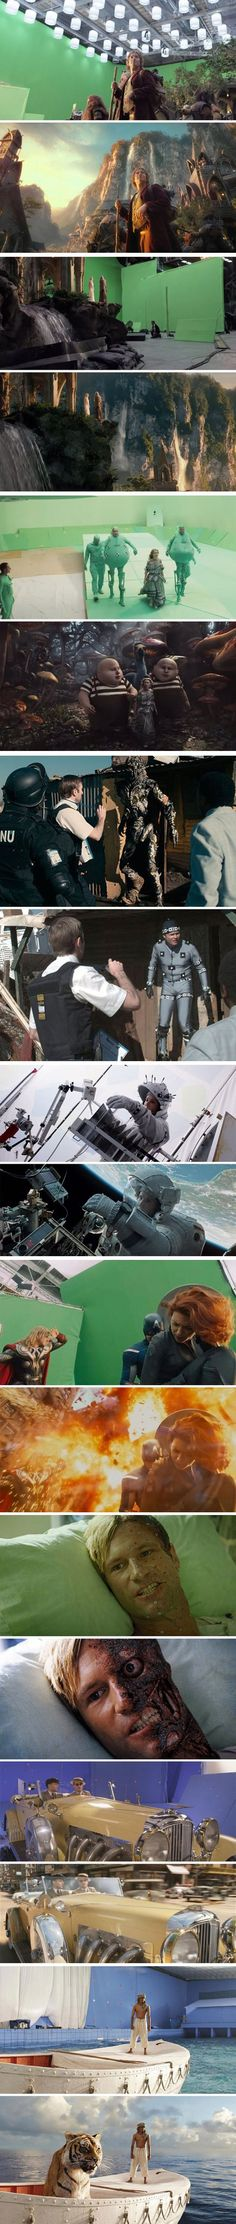 visual effects in movies